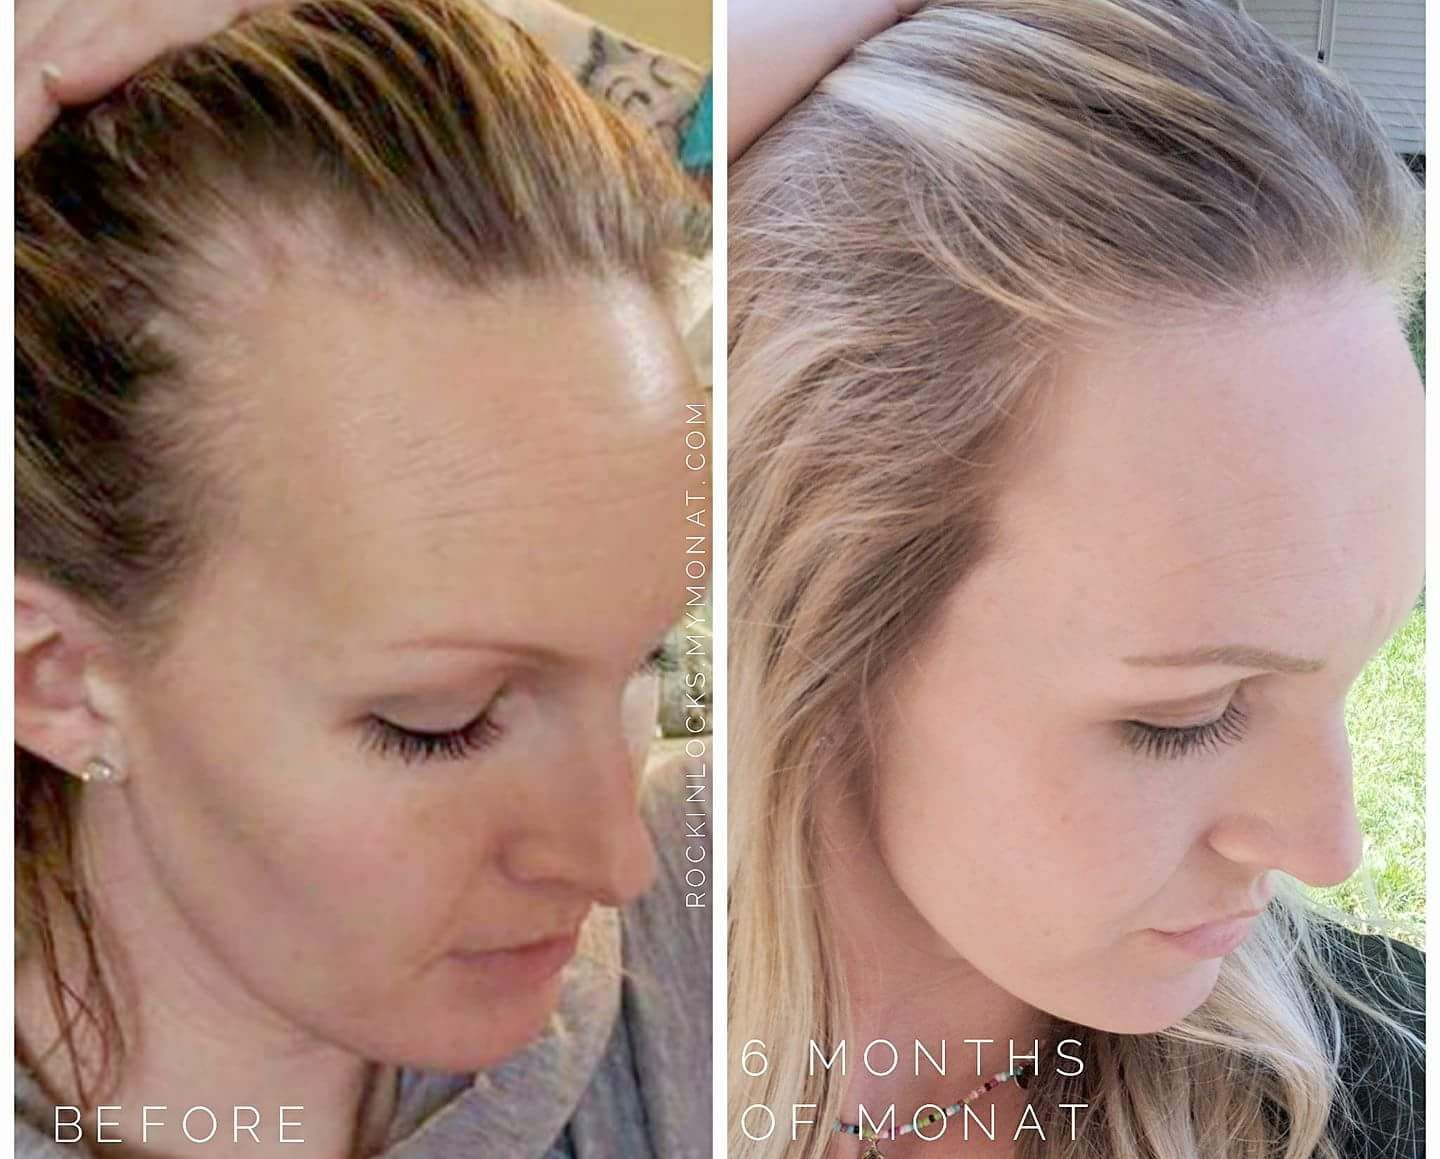 Postpartum hair loss regrowth. Nontoxic. No side effects